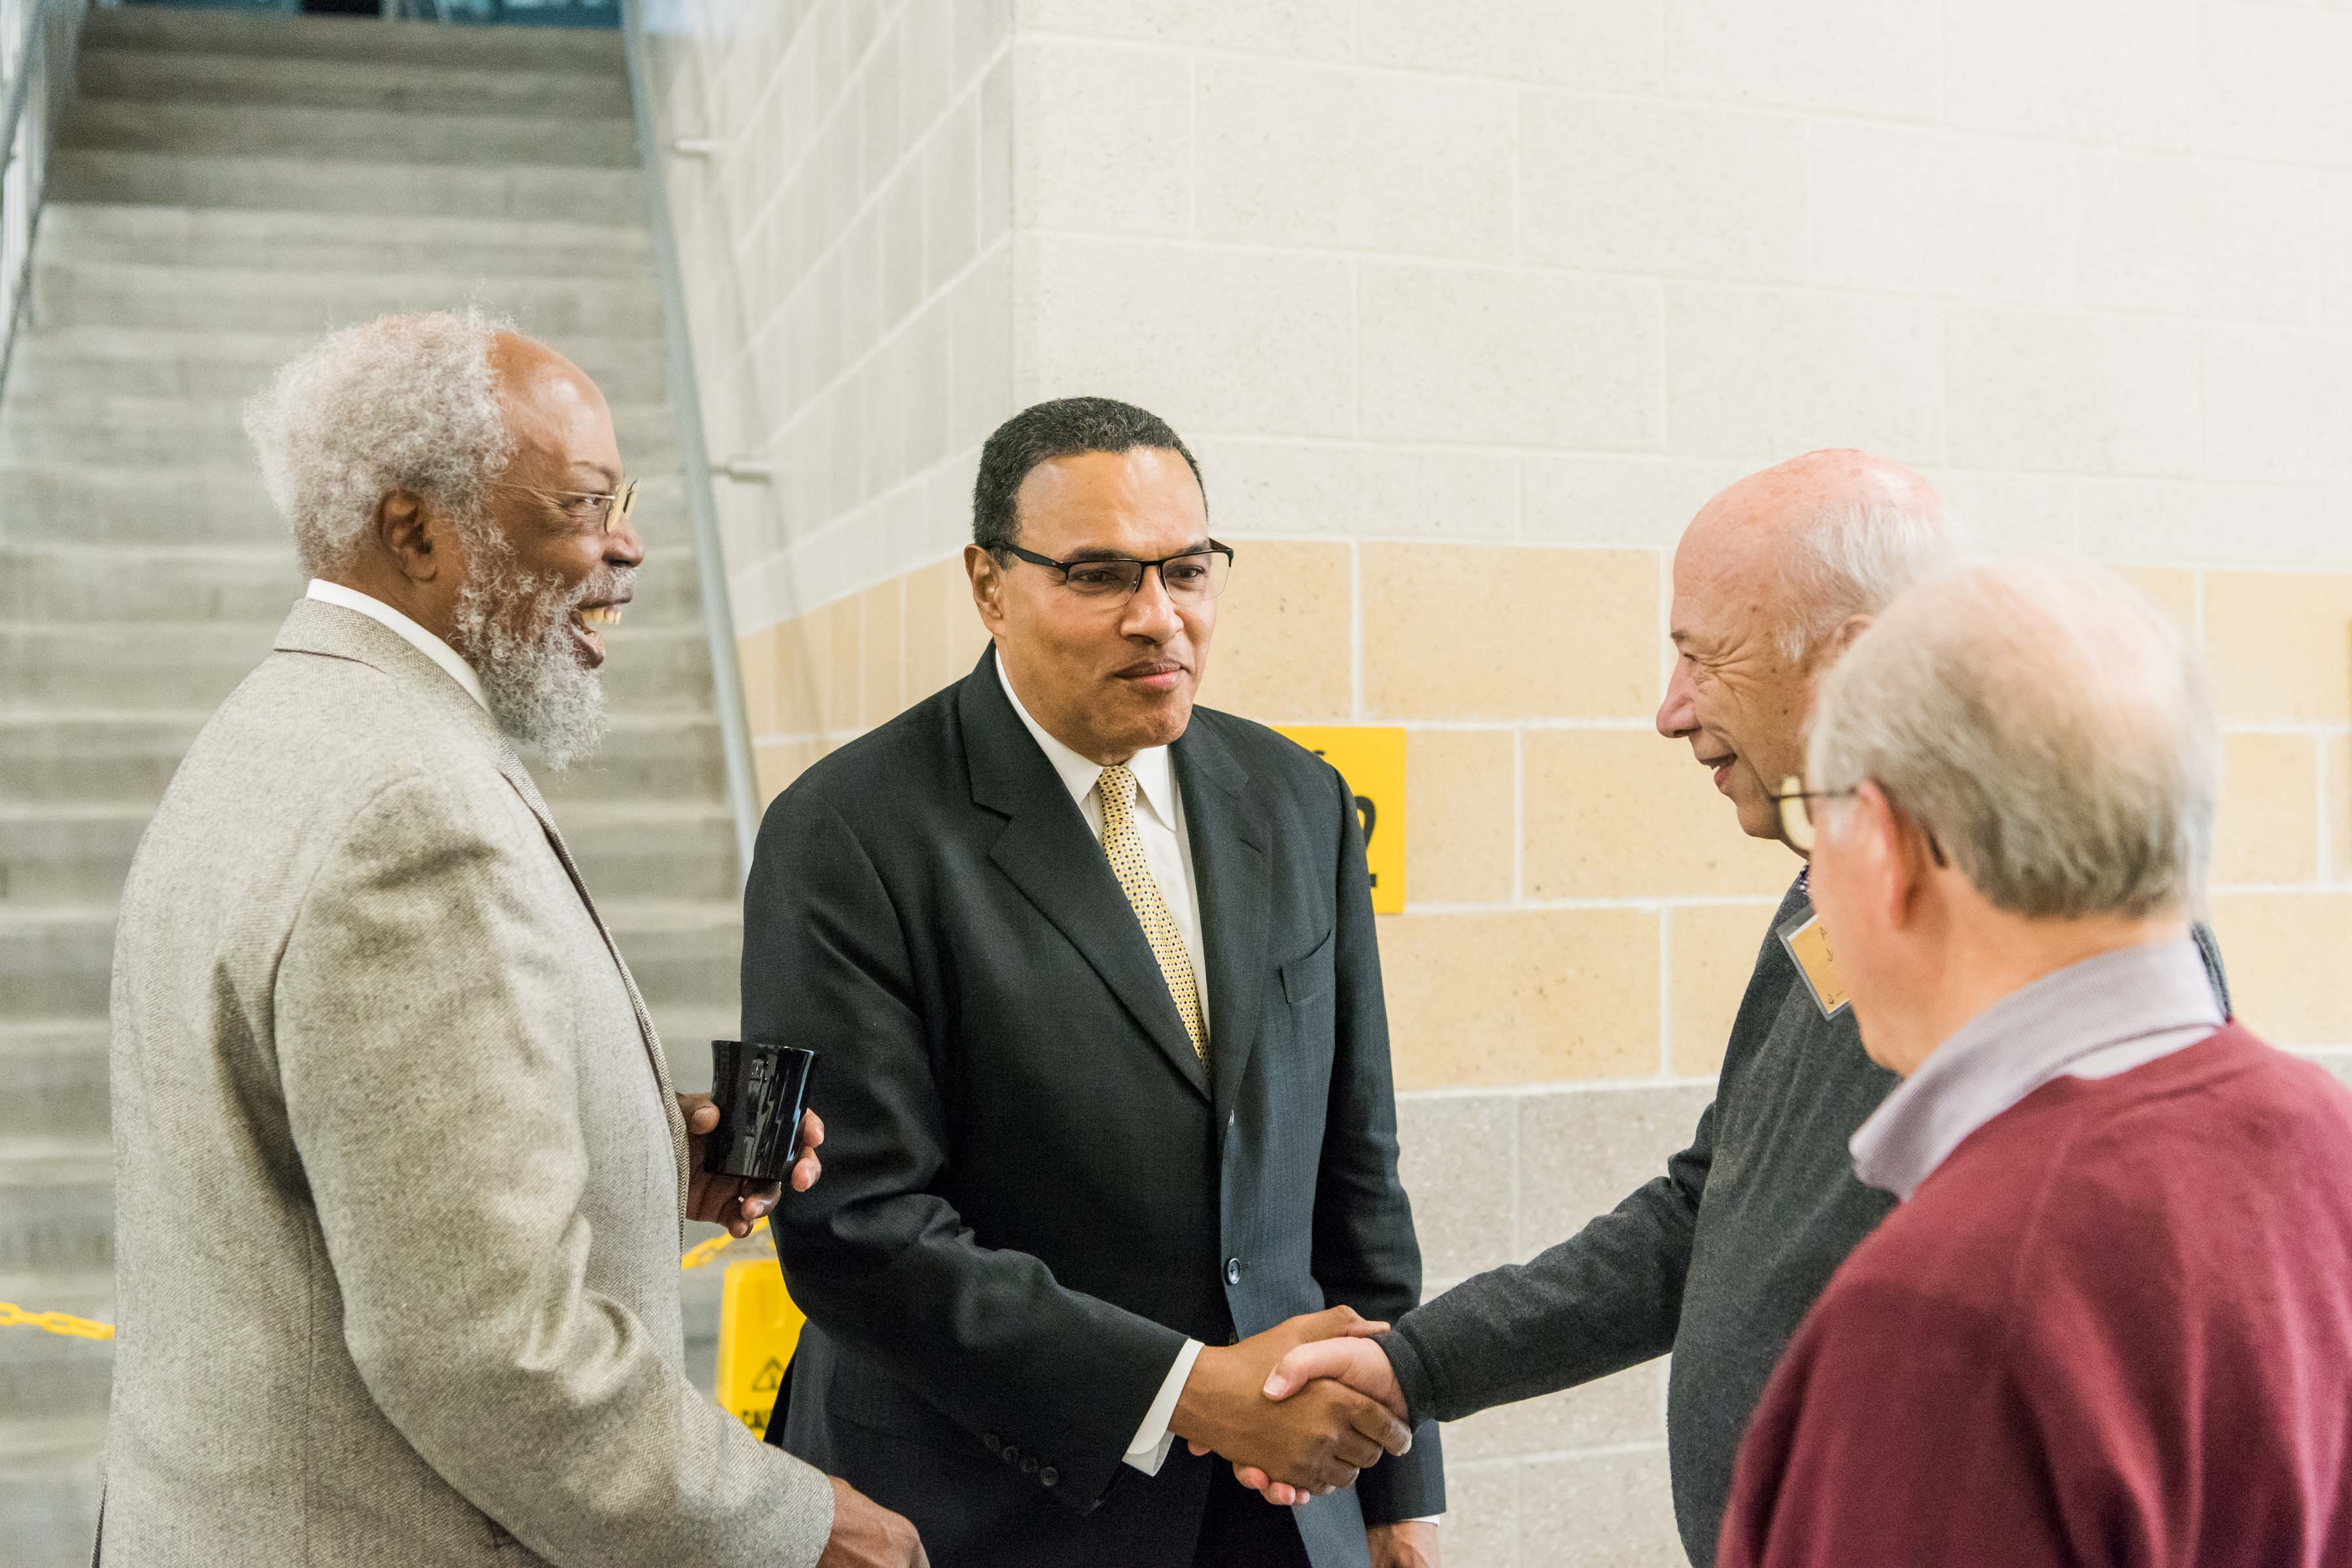 Hrabowski shakes hands with people at Wisdom Institute lunch